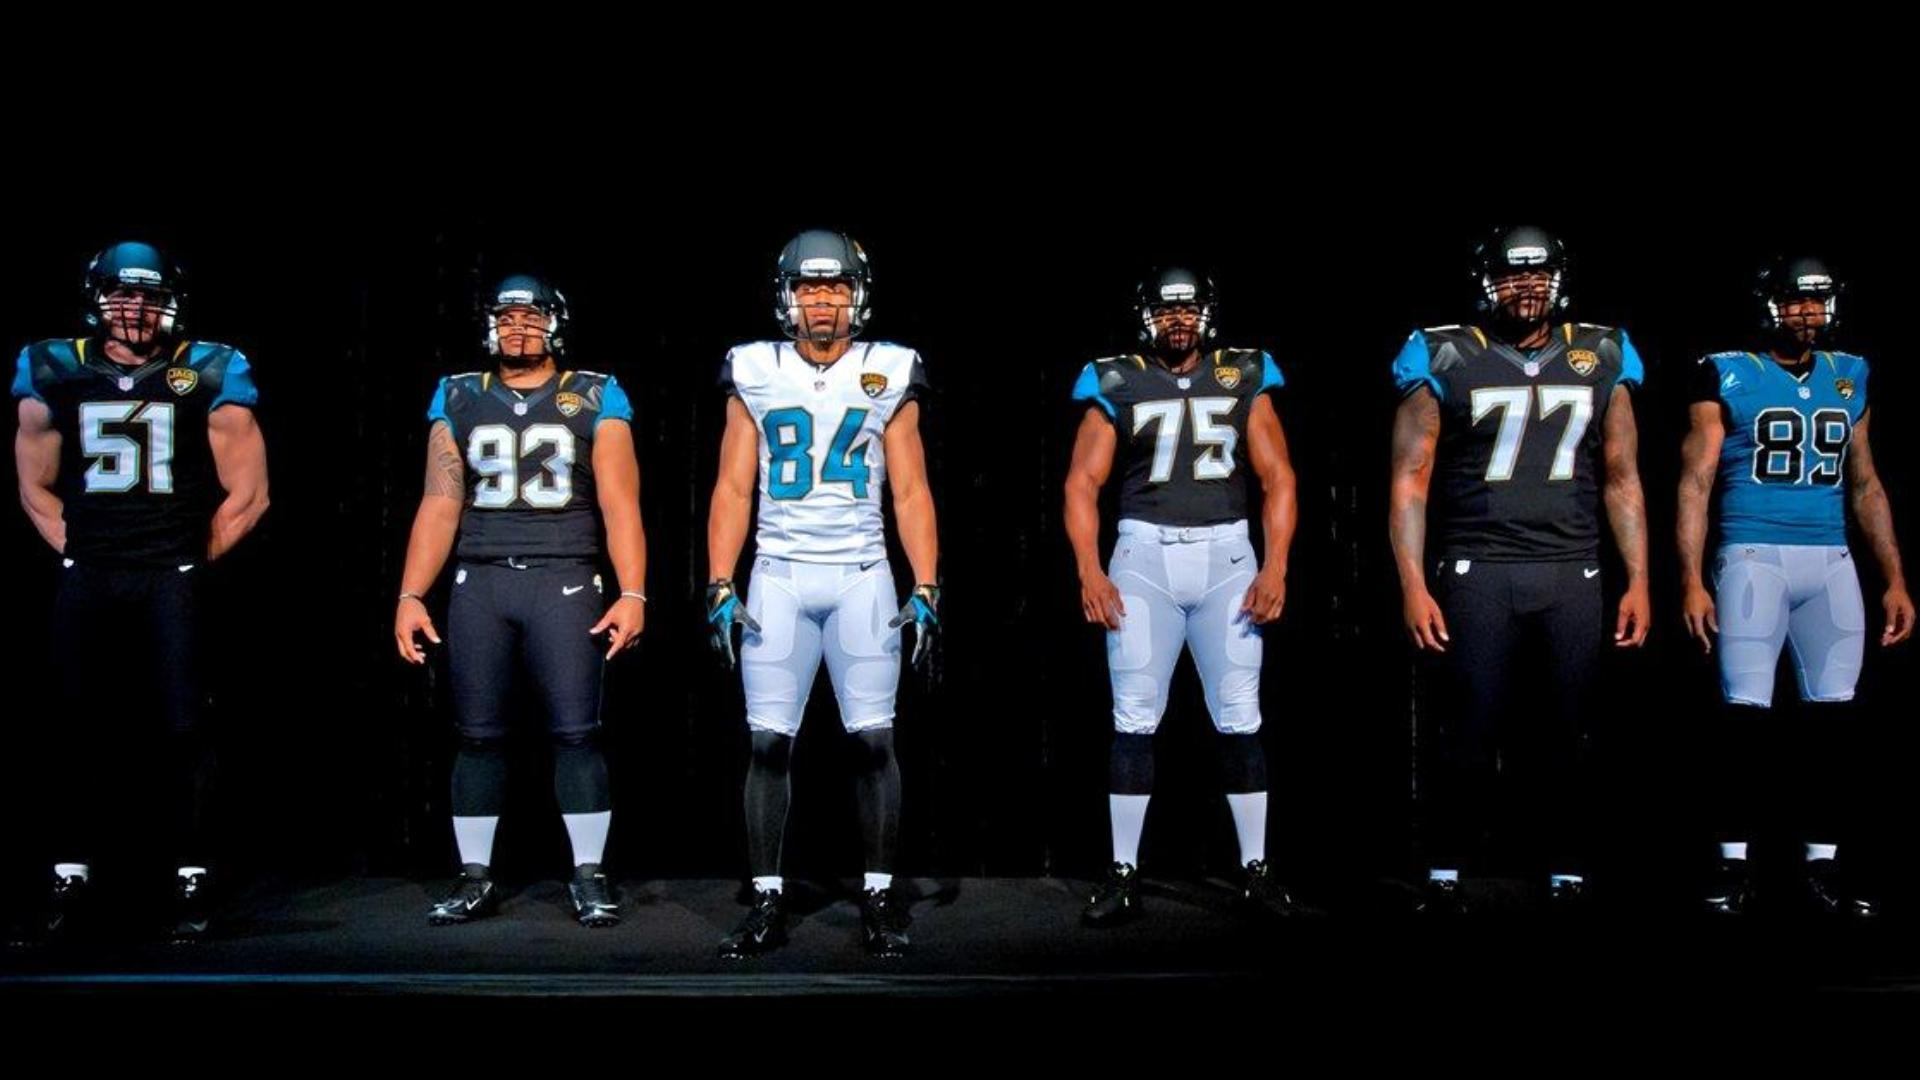 JACKSONVILLE JAGUARS nfl football dg wallpaper background 1920x1080